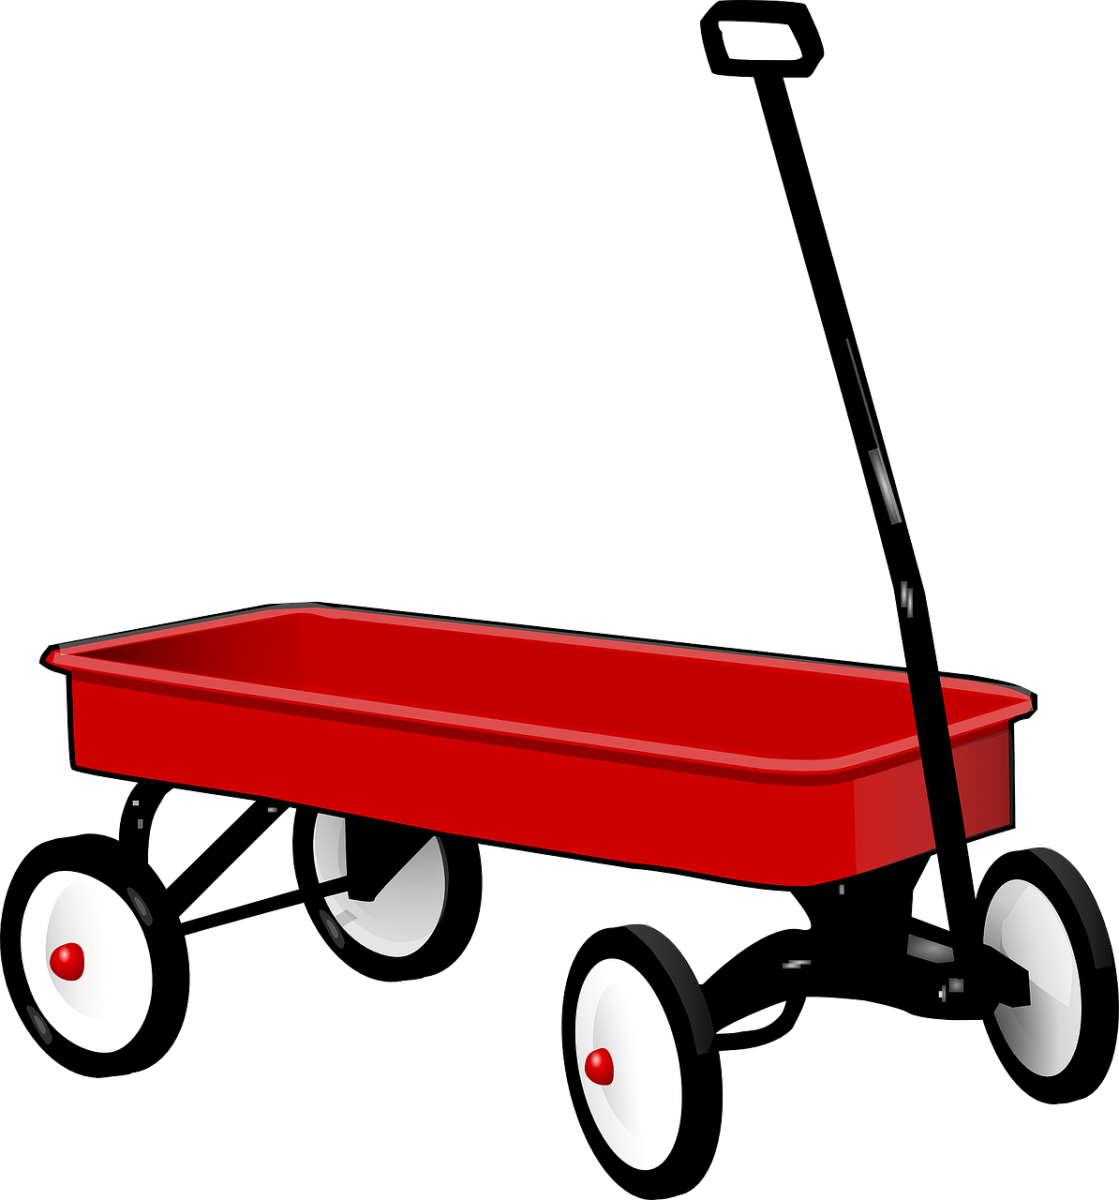 Little Red Wagon post 1/5/16 - Little Red Wagon PNG